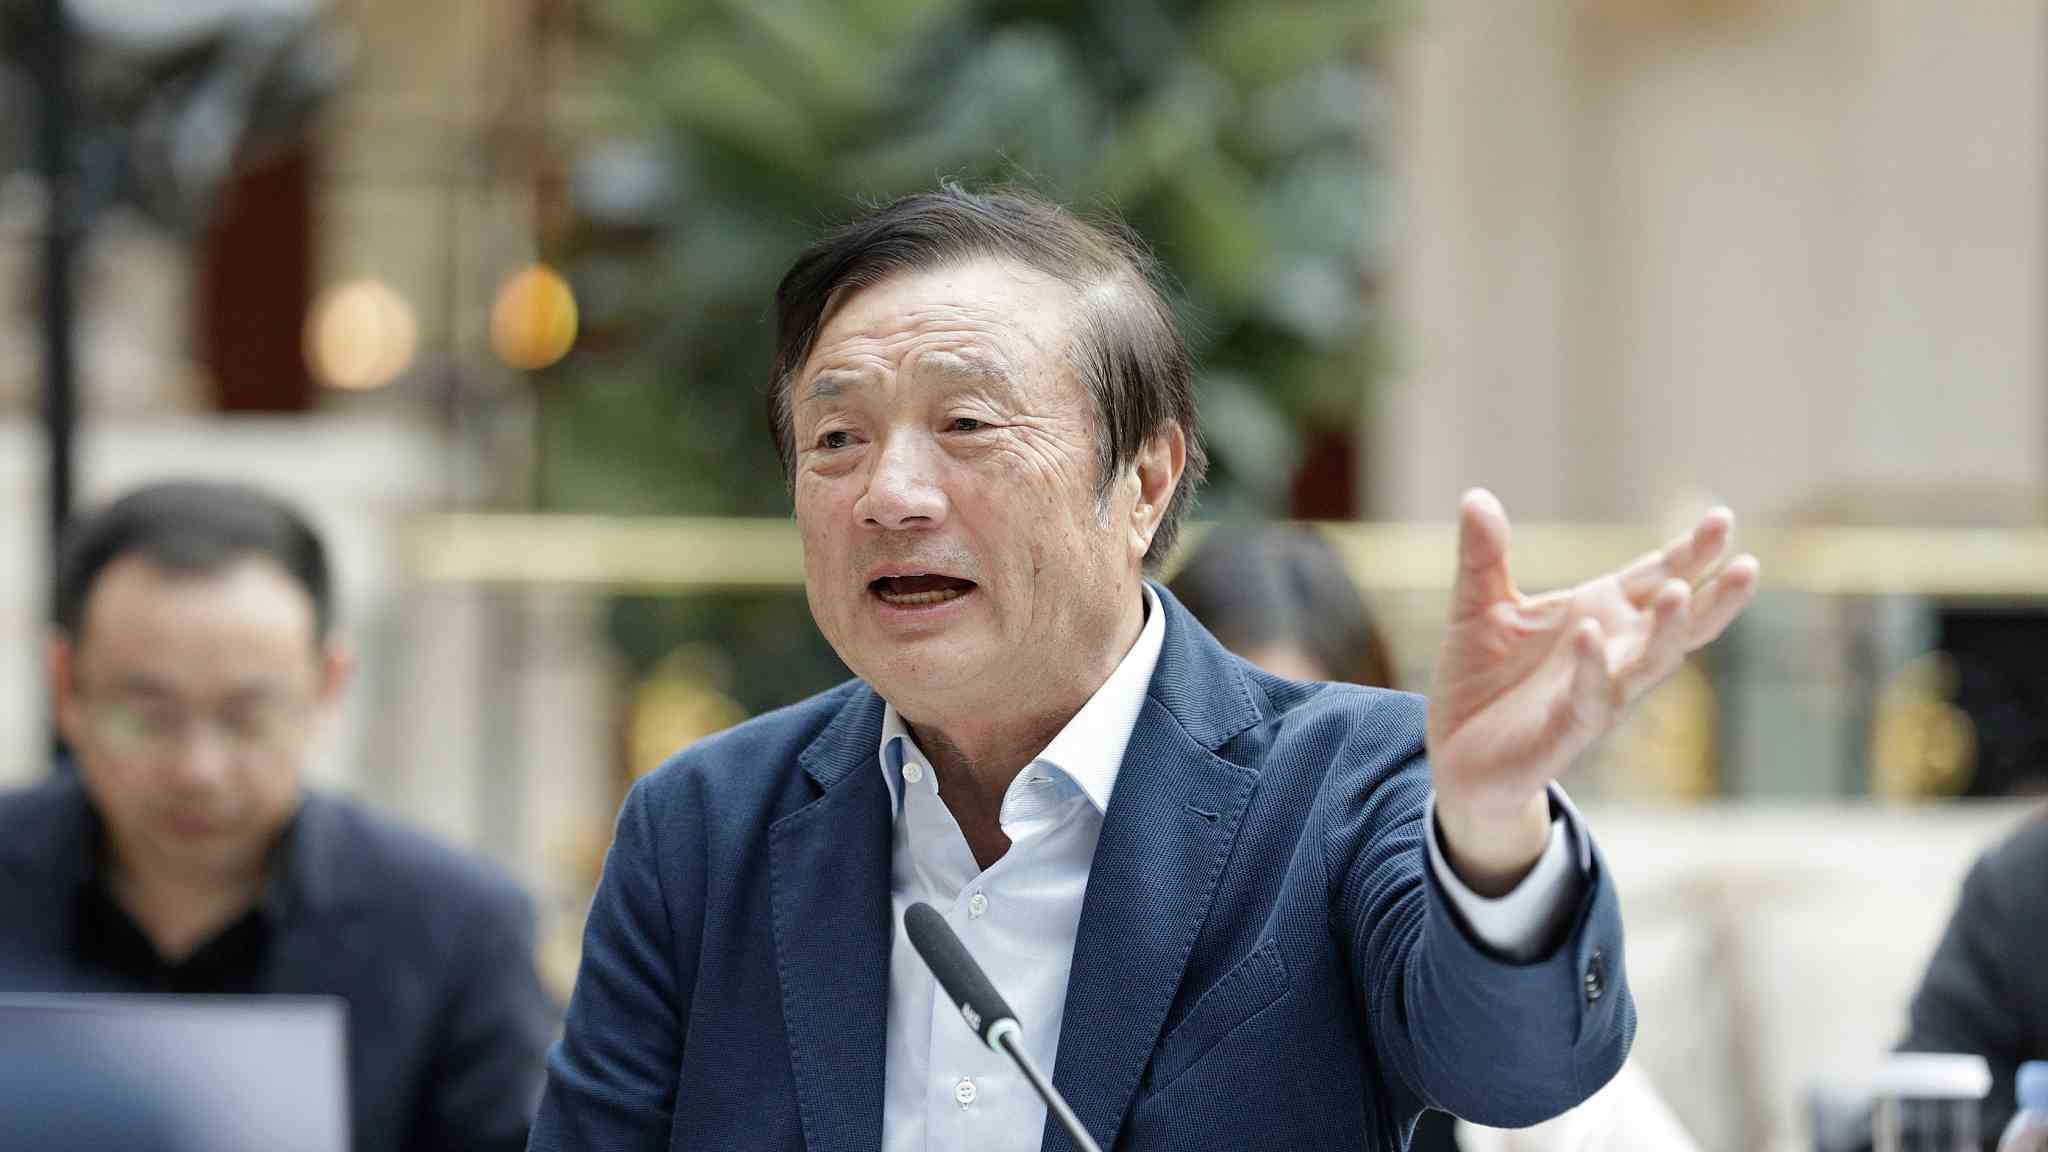 Huawei founder Ren Zhengfei denies spy accusation